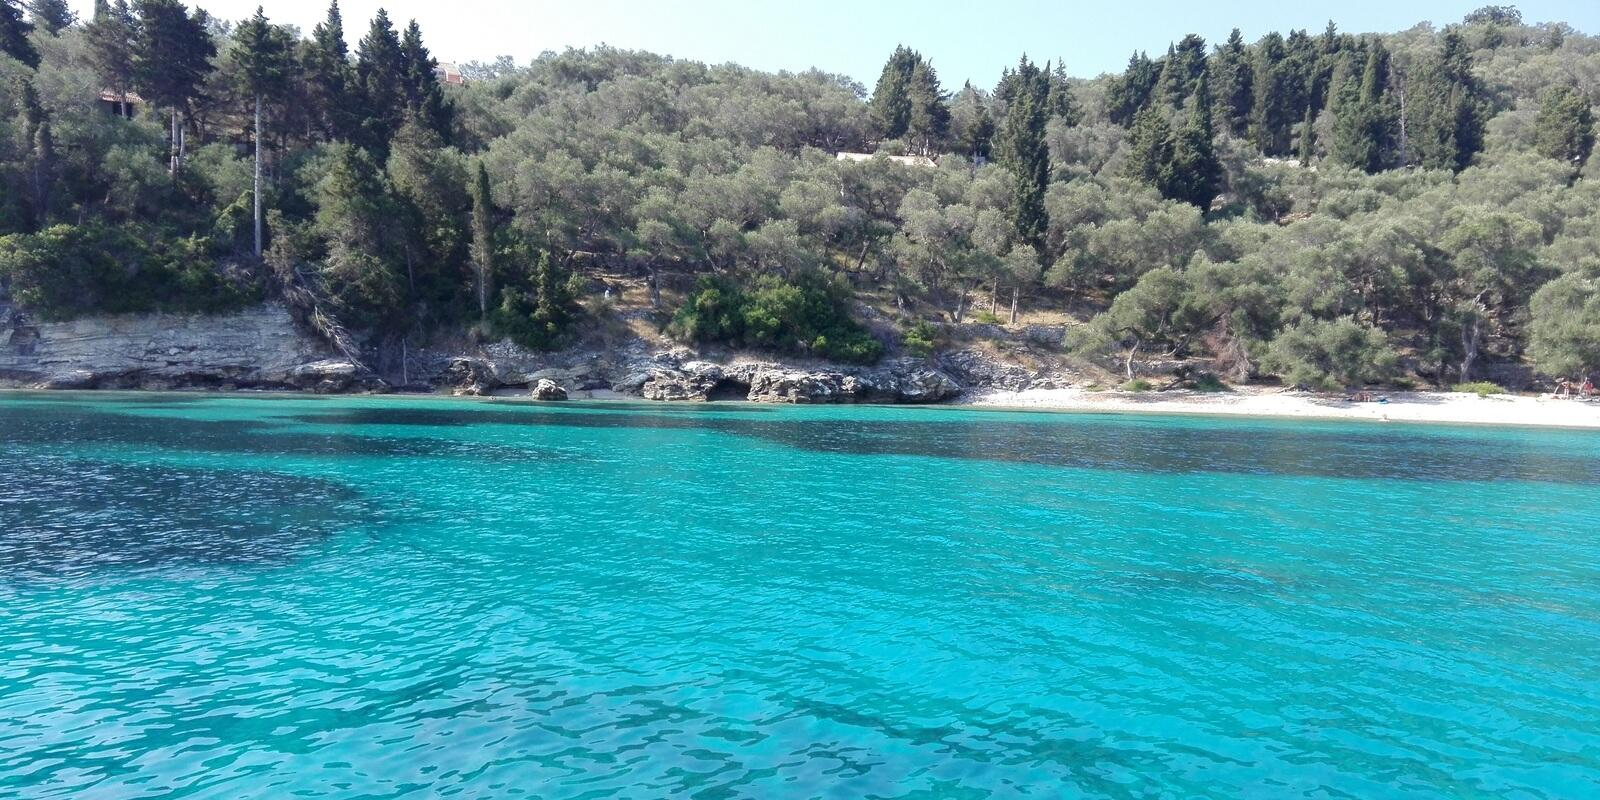 Holiday in Greece: Kefalonia and Ithaca on a sailing boat with Hostess on board.